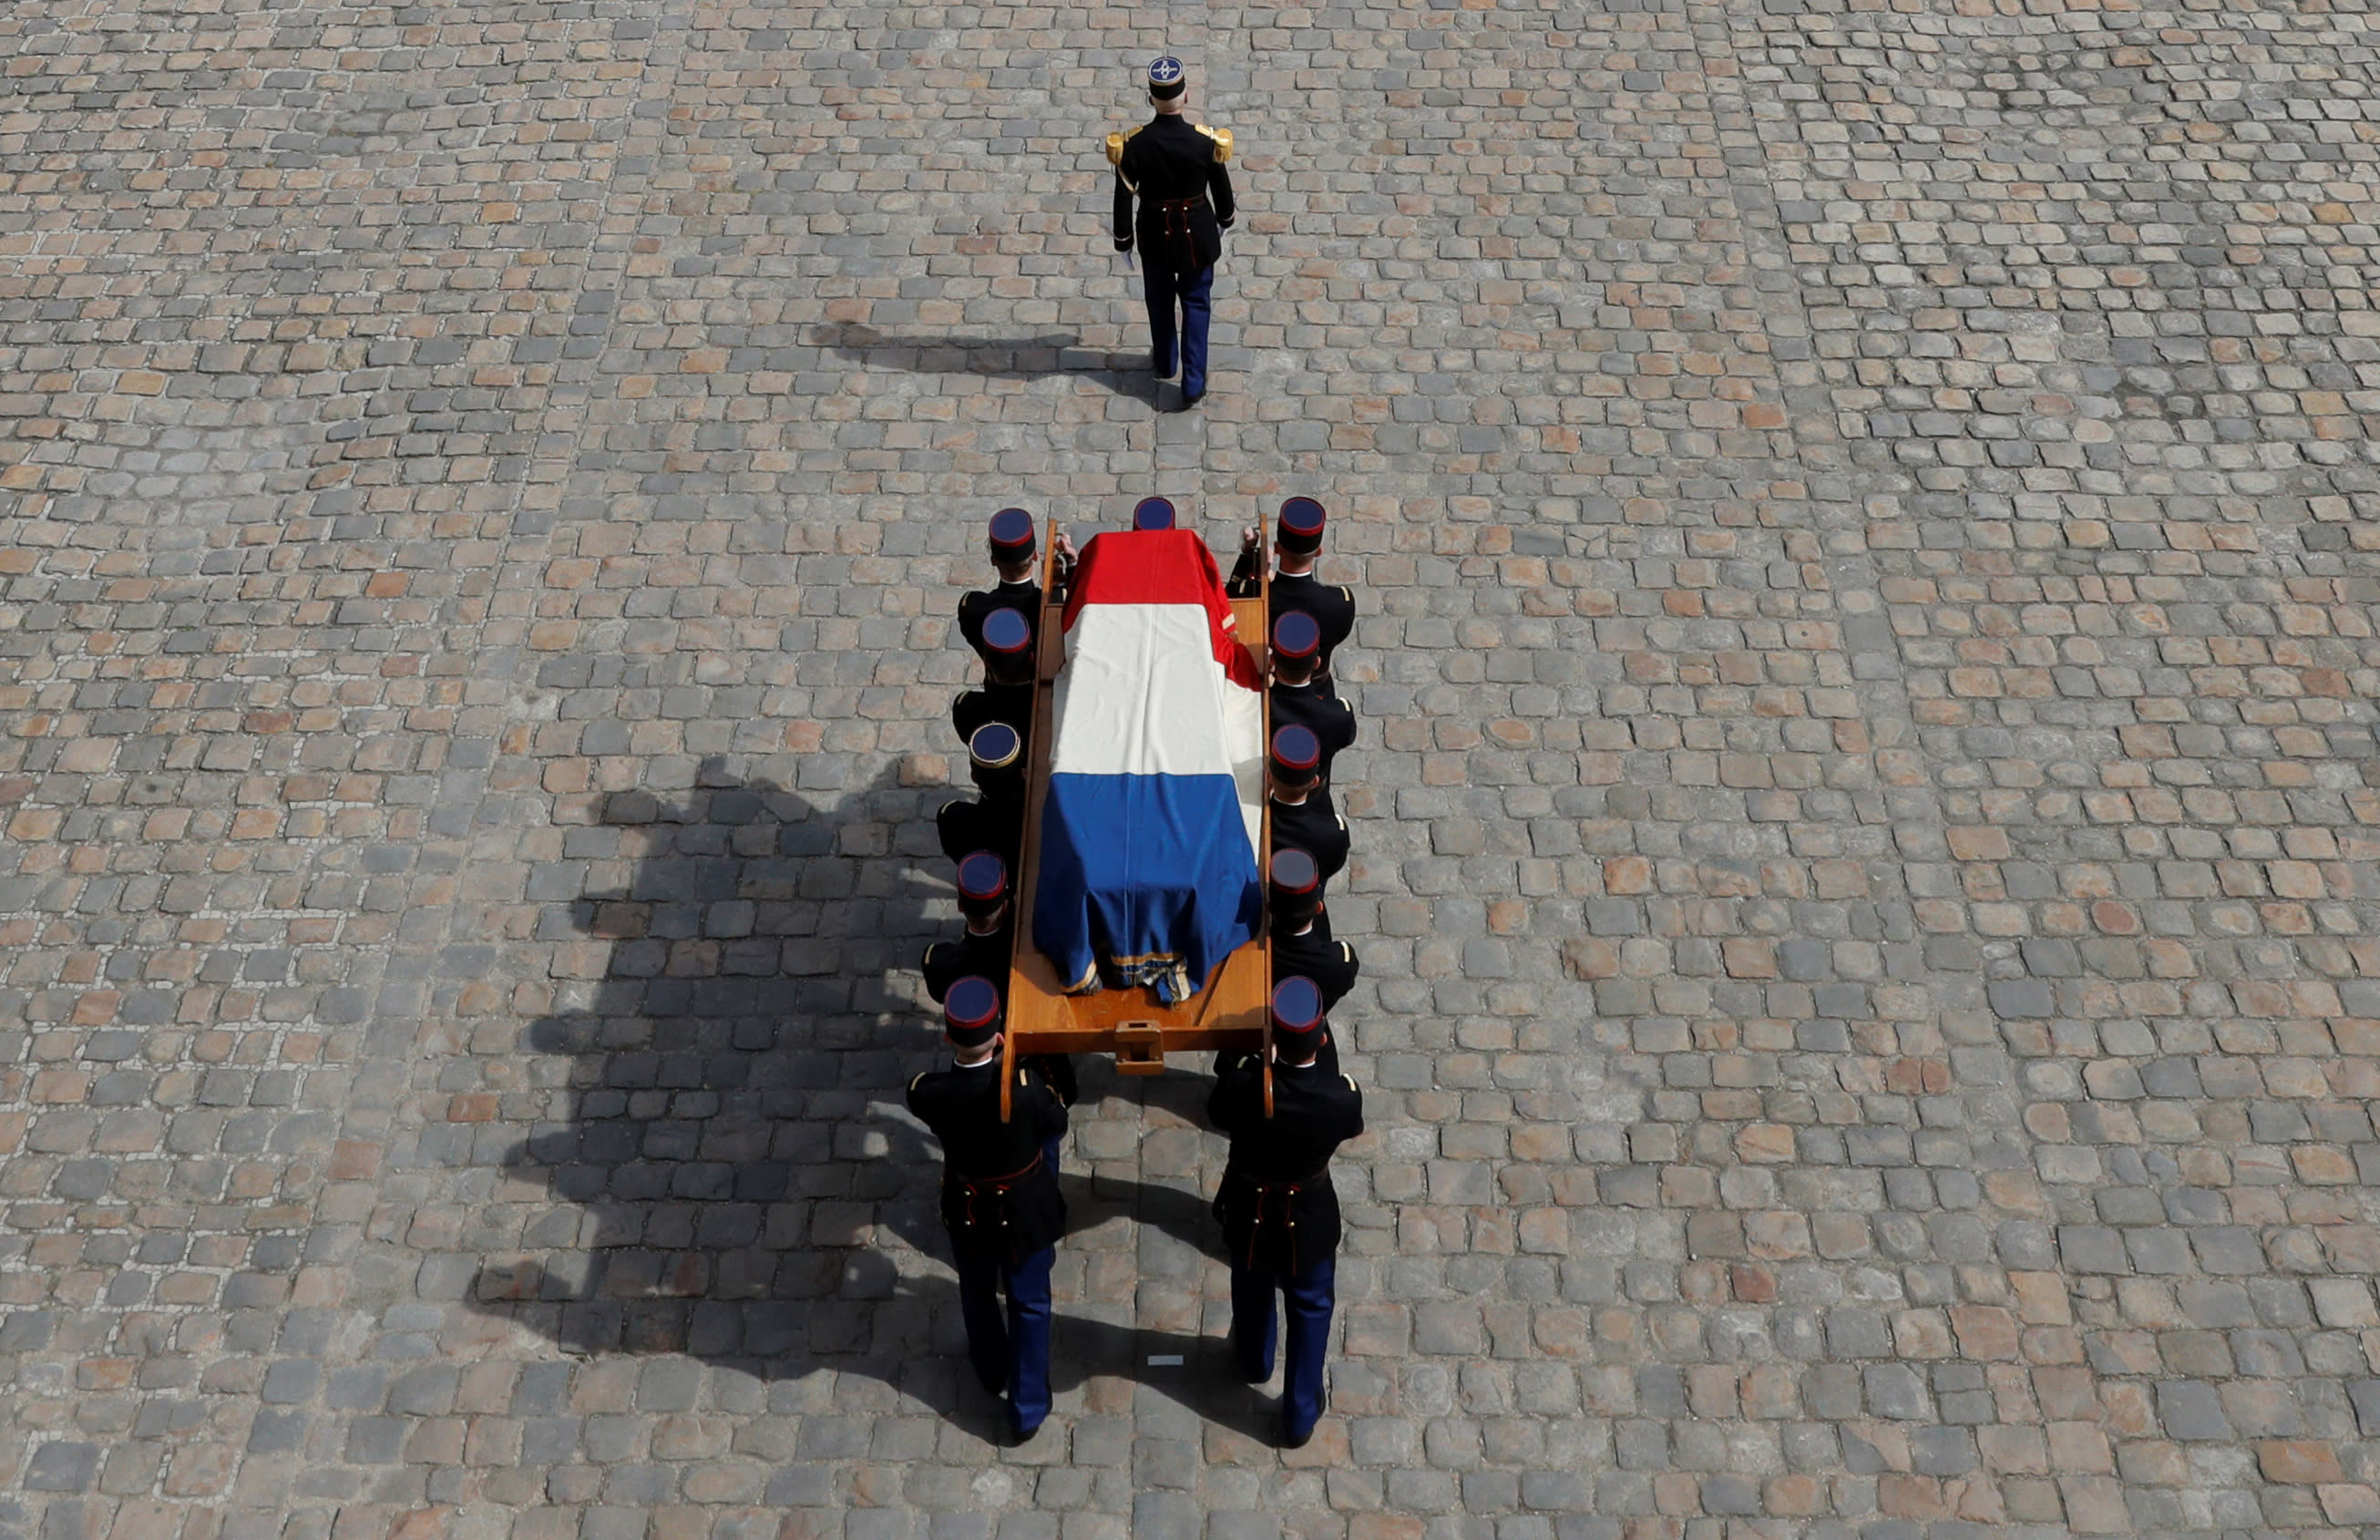 French Republican guards carry the flag-draped coffin of late French politician Simone Veil during a national tribute ceremony at the Hotel des Invalides in Paris, France, July 5, 2017 (Reuters)